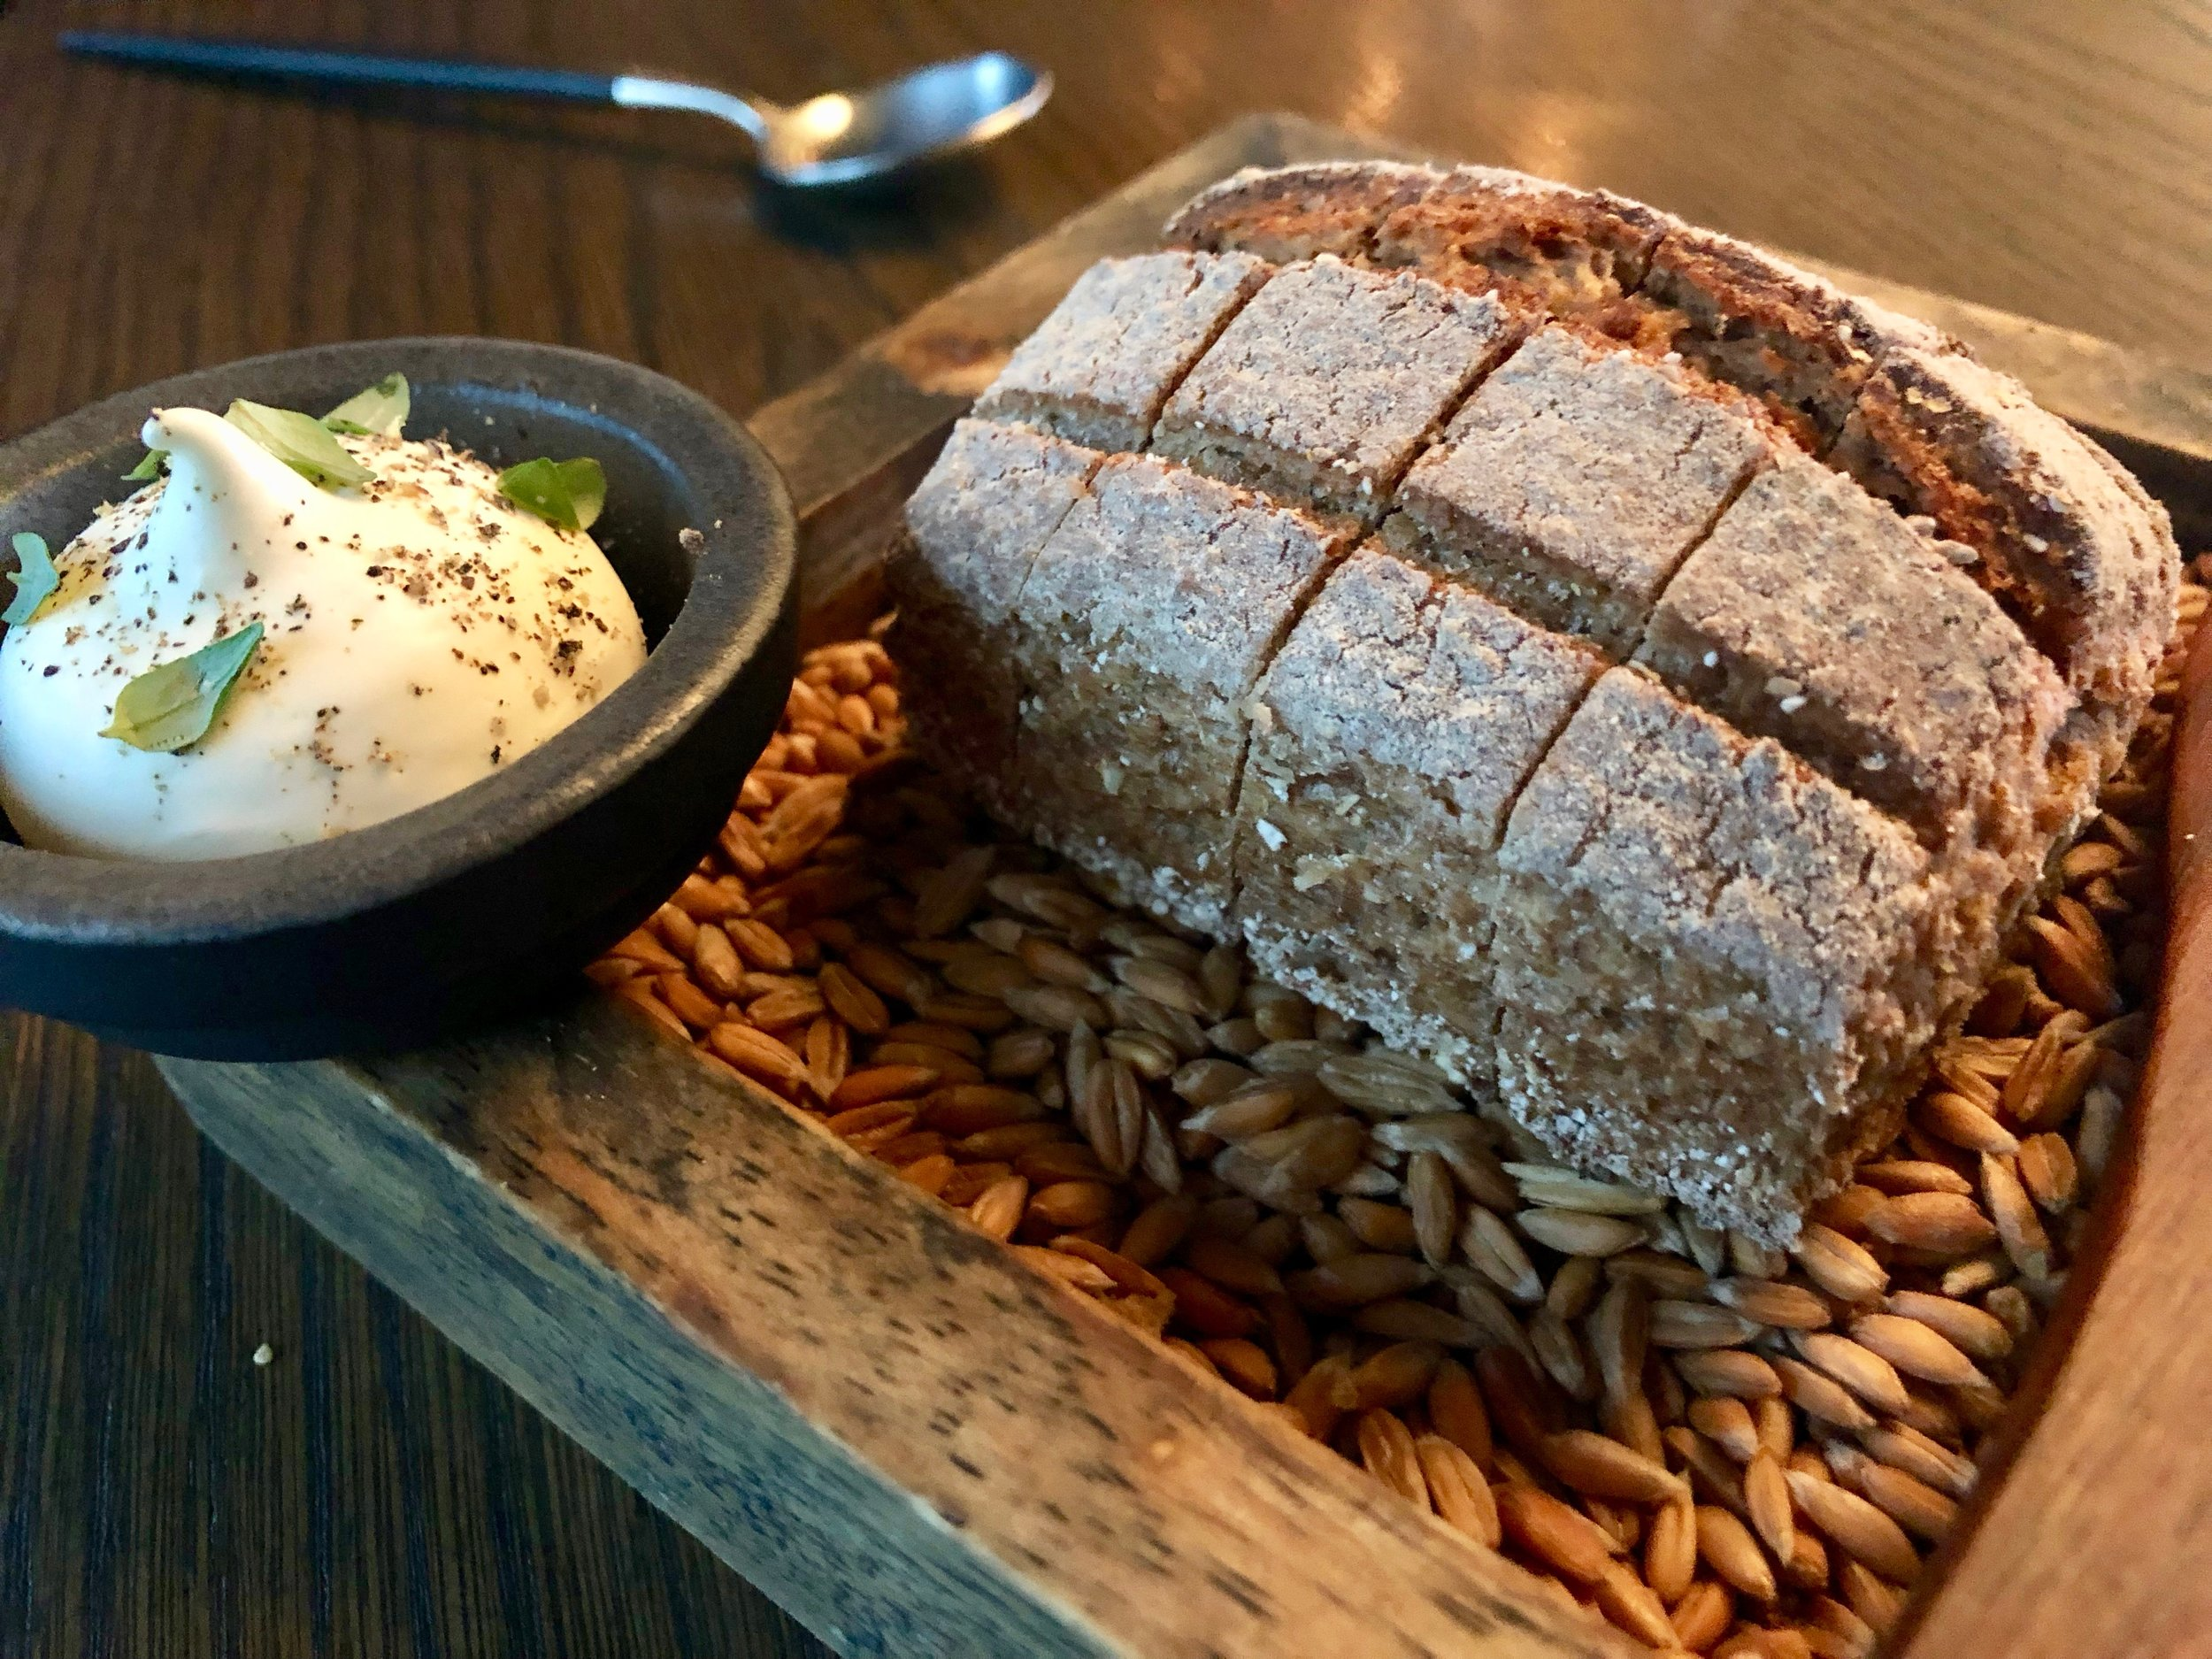 """In case all those courses aren't enough, Kontrast also brings each diner an individual sliced sourdough rye bread. It's served with organic butter blended with pork fat, rosemary and thyme. So much for my colleague saying, """"It isn't a heavy dinner. It's a fishy dinner."""" #worthit"""